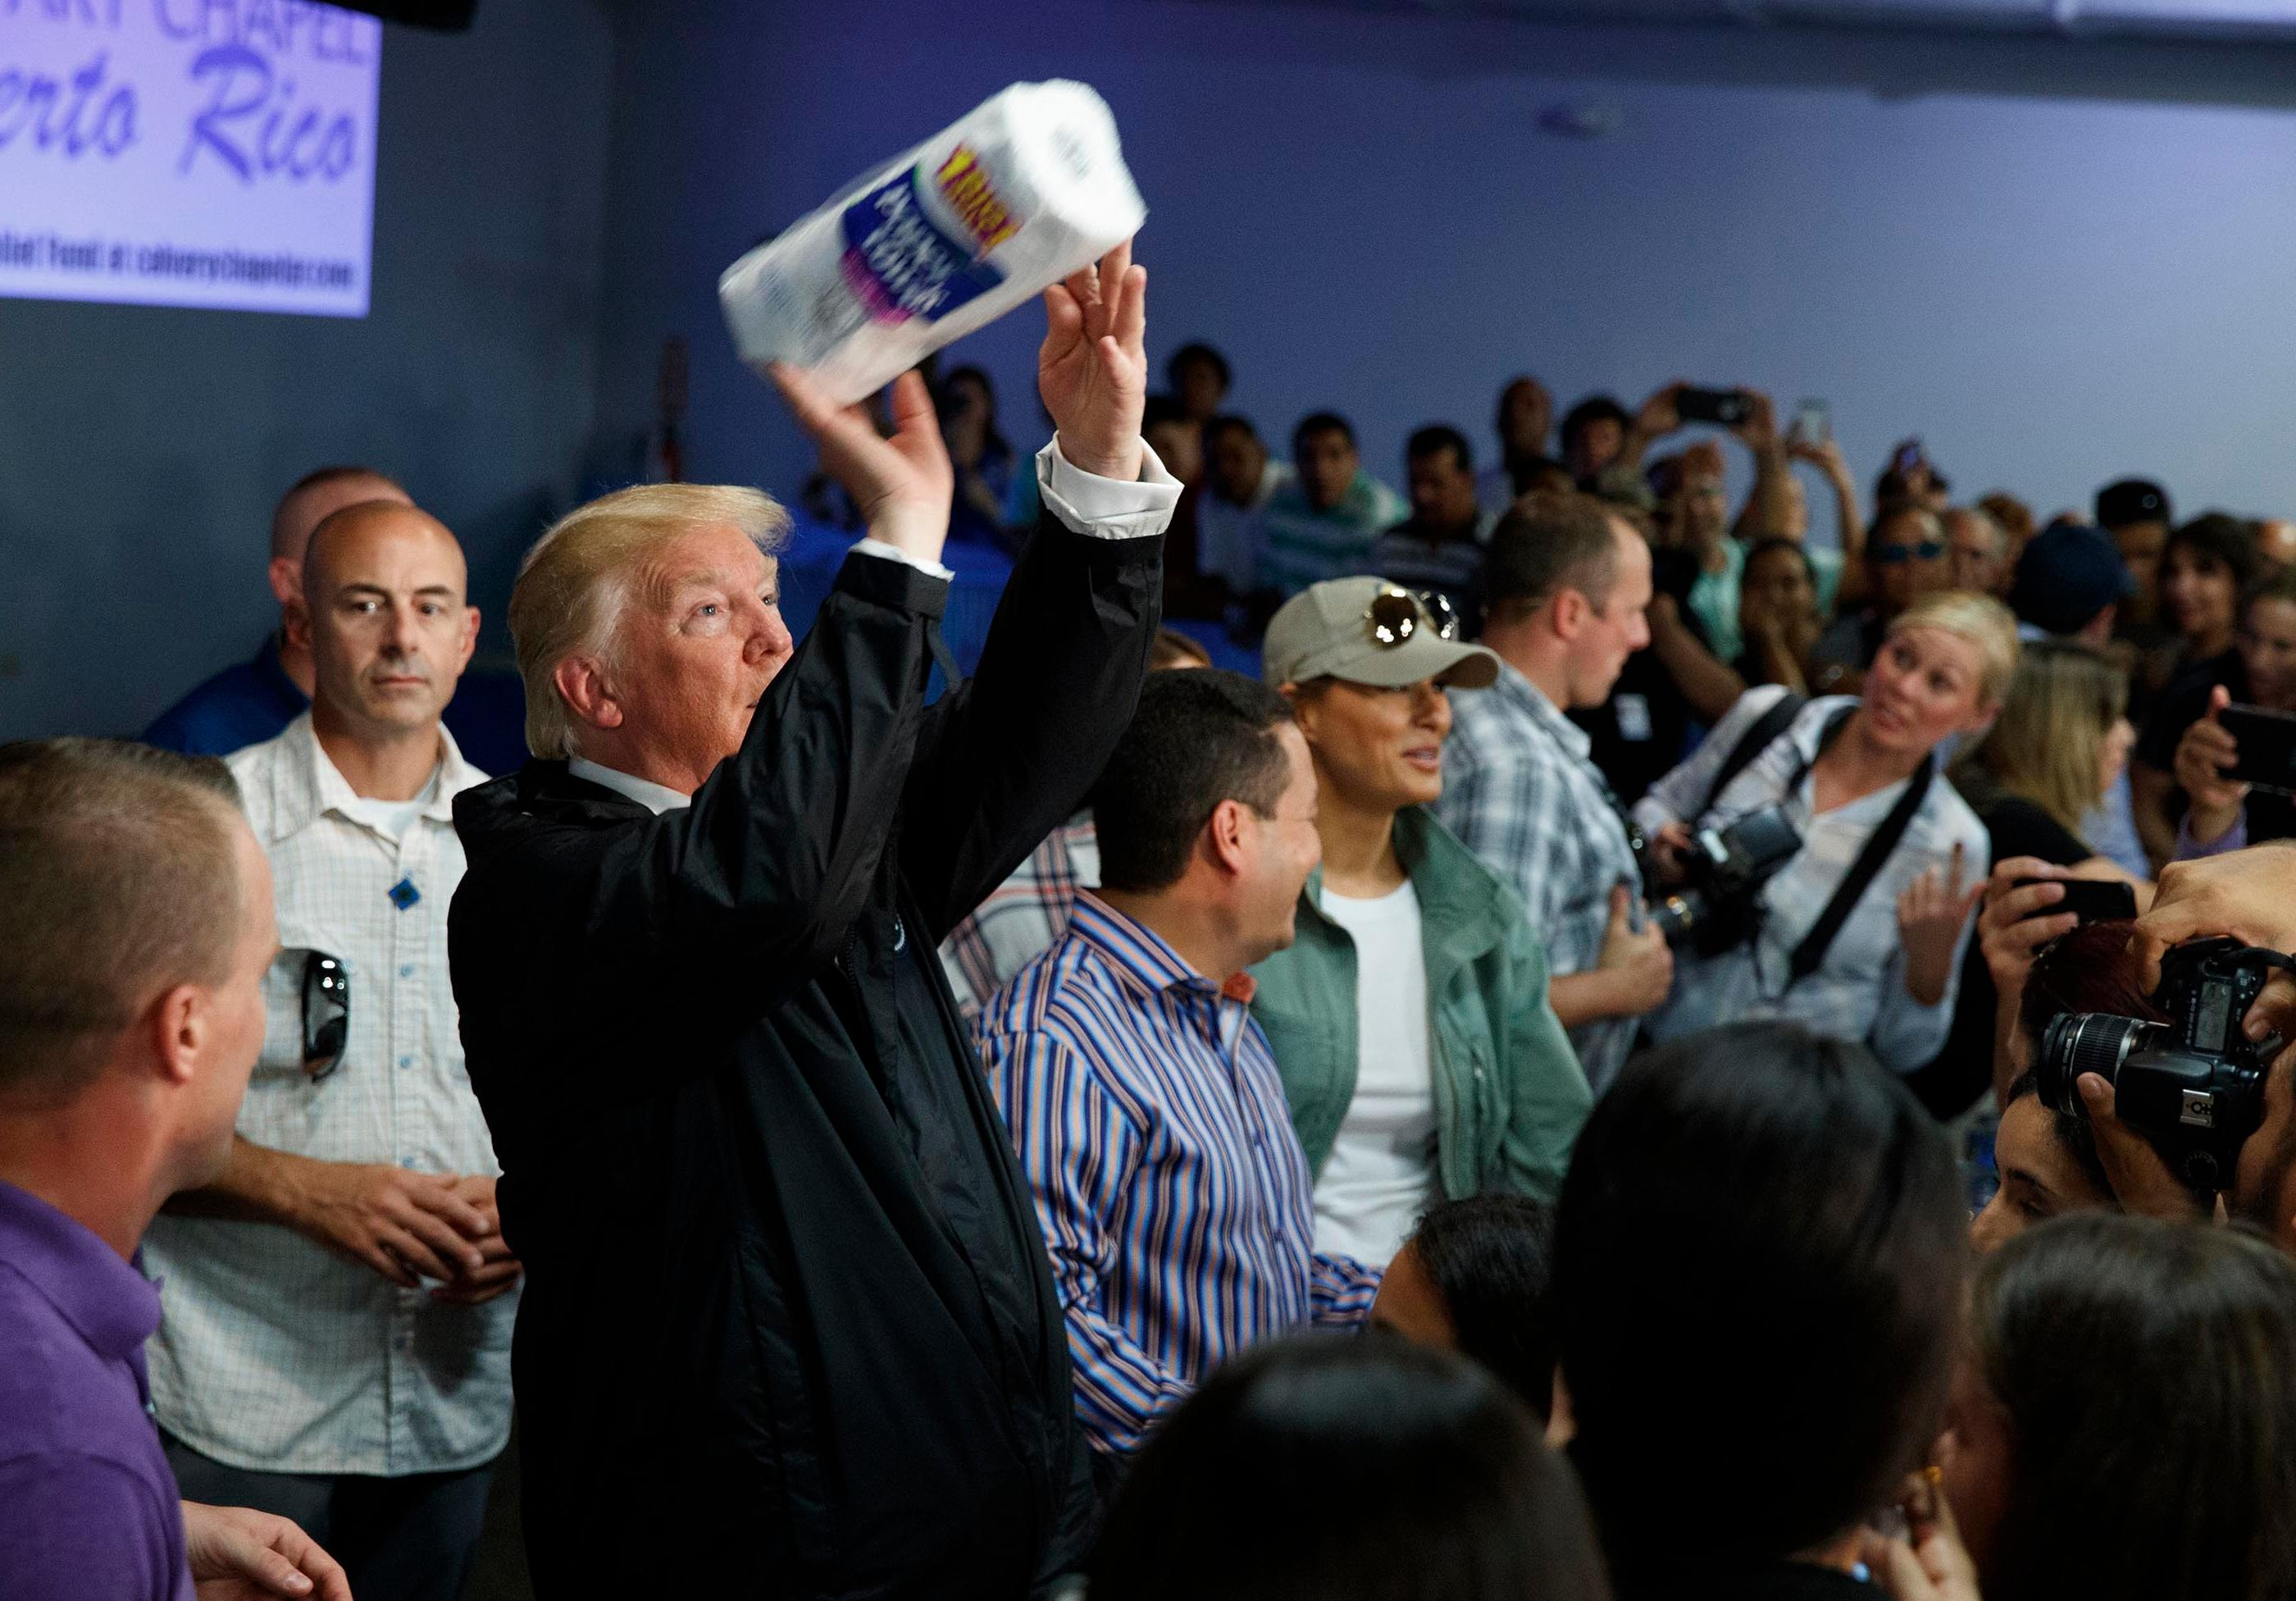 President Donald Trump tosses paper towels into a crowd as he hands out supplies at Calvary Chapel, Tuesday, Oct. 3, 2017, in Guaynabo, Puerto Rico. Trump is in Puerto Rico to survey hurricane damage. (AP Photo/Evan Vucci, File)